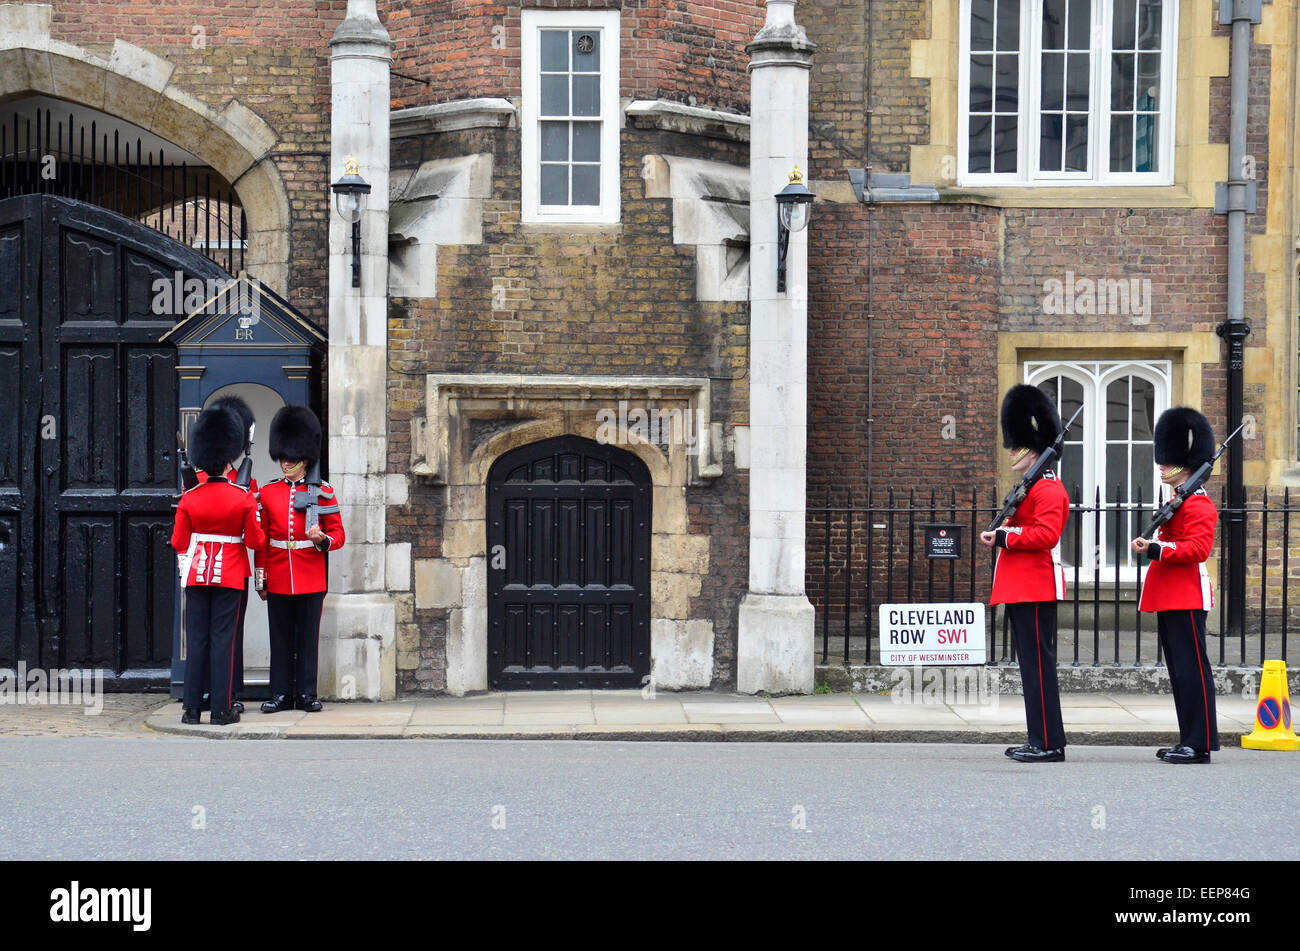 En dehors des gardes St James's Palace, London, England, UK Photo Stock